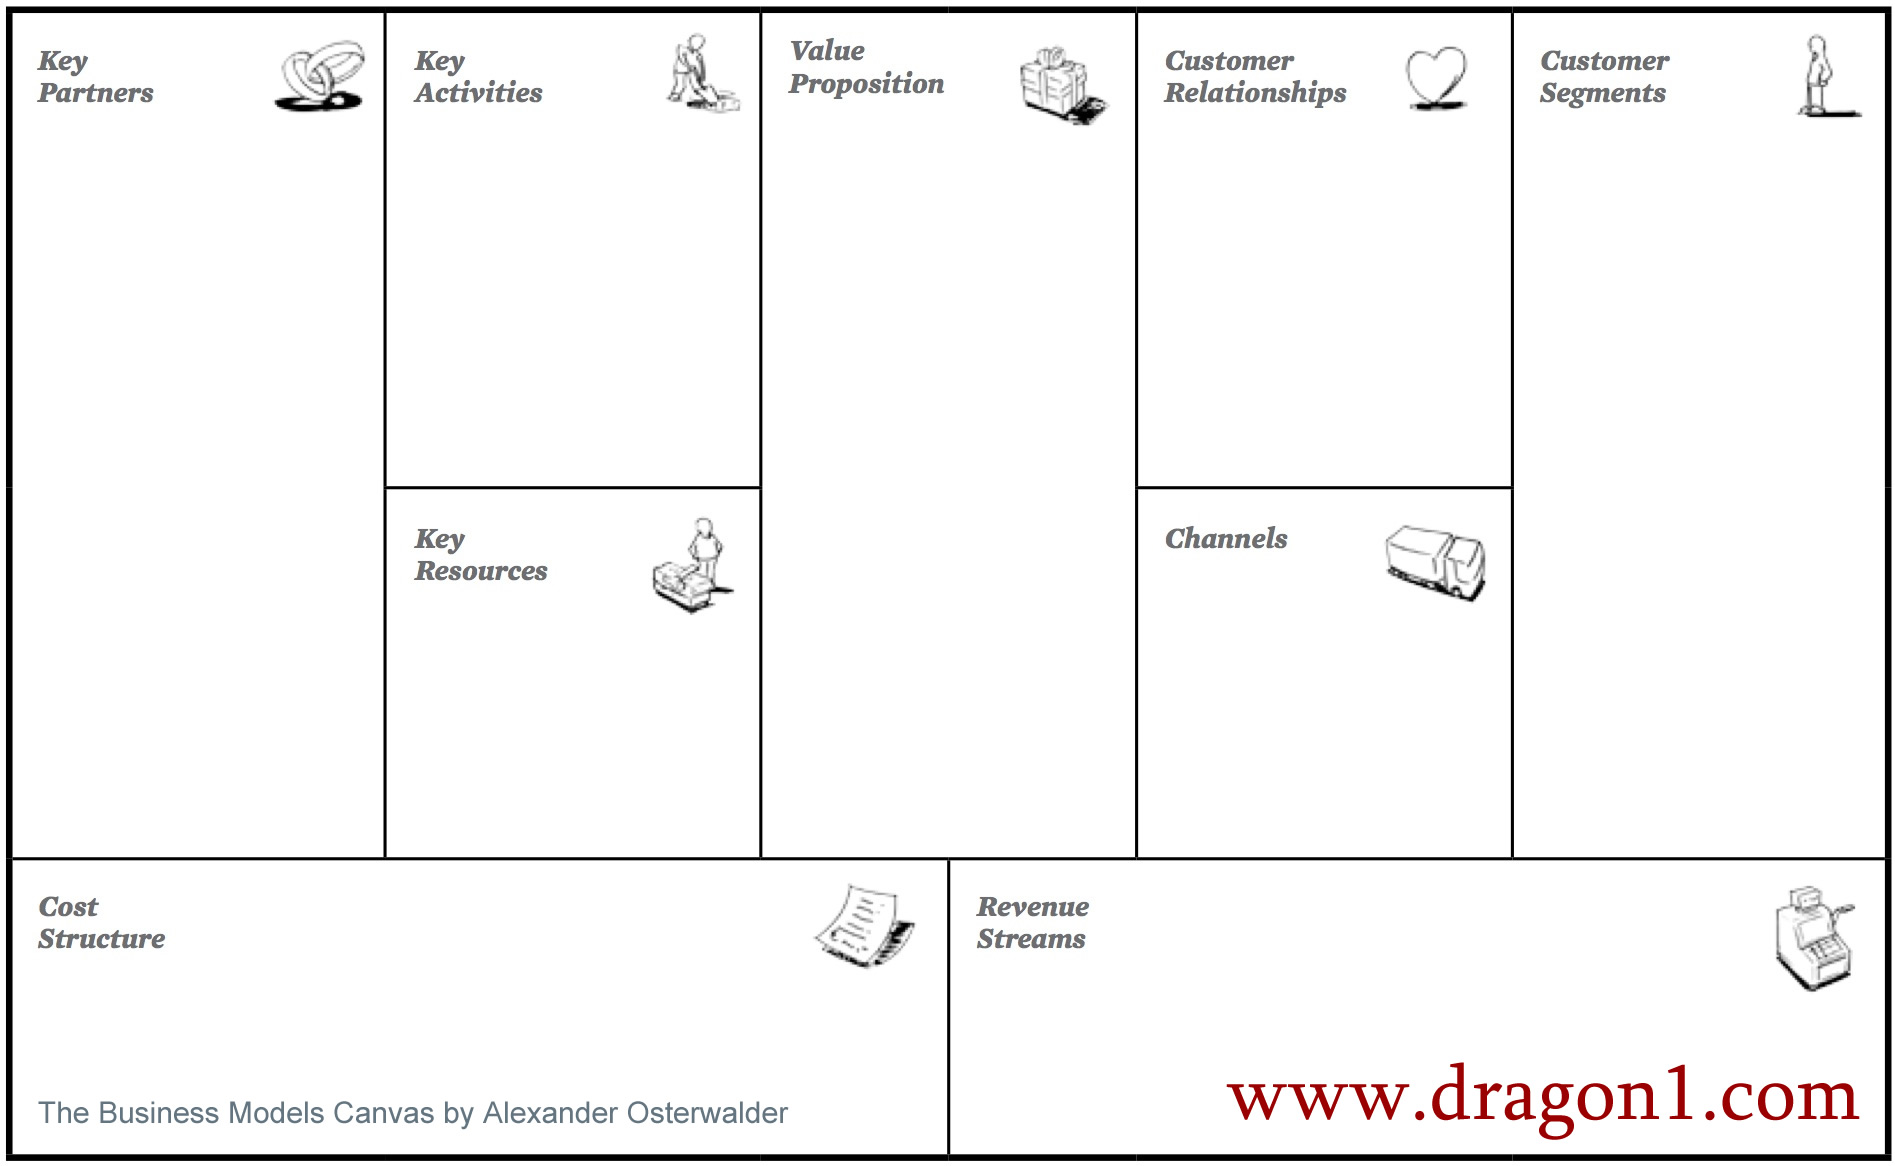 Business model canvas template dragon1 business model canvas template flashek